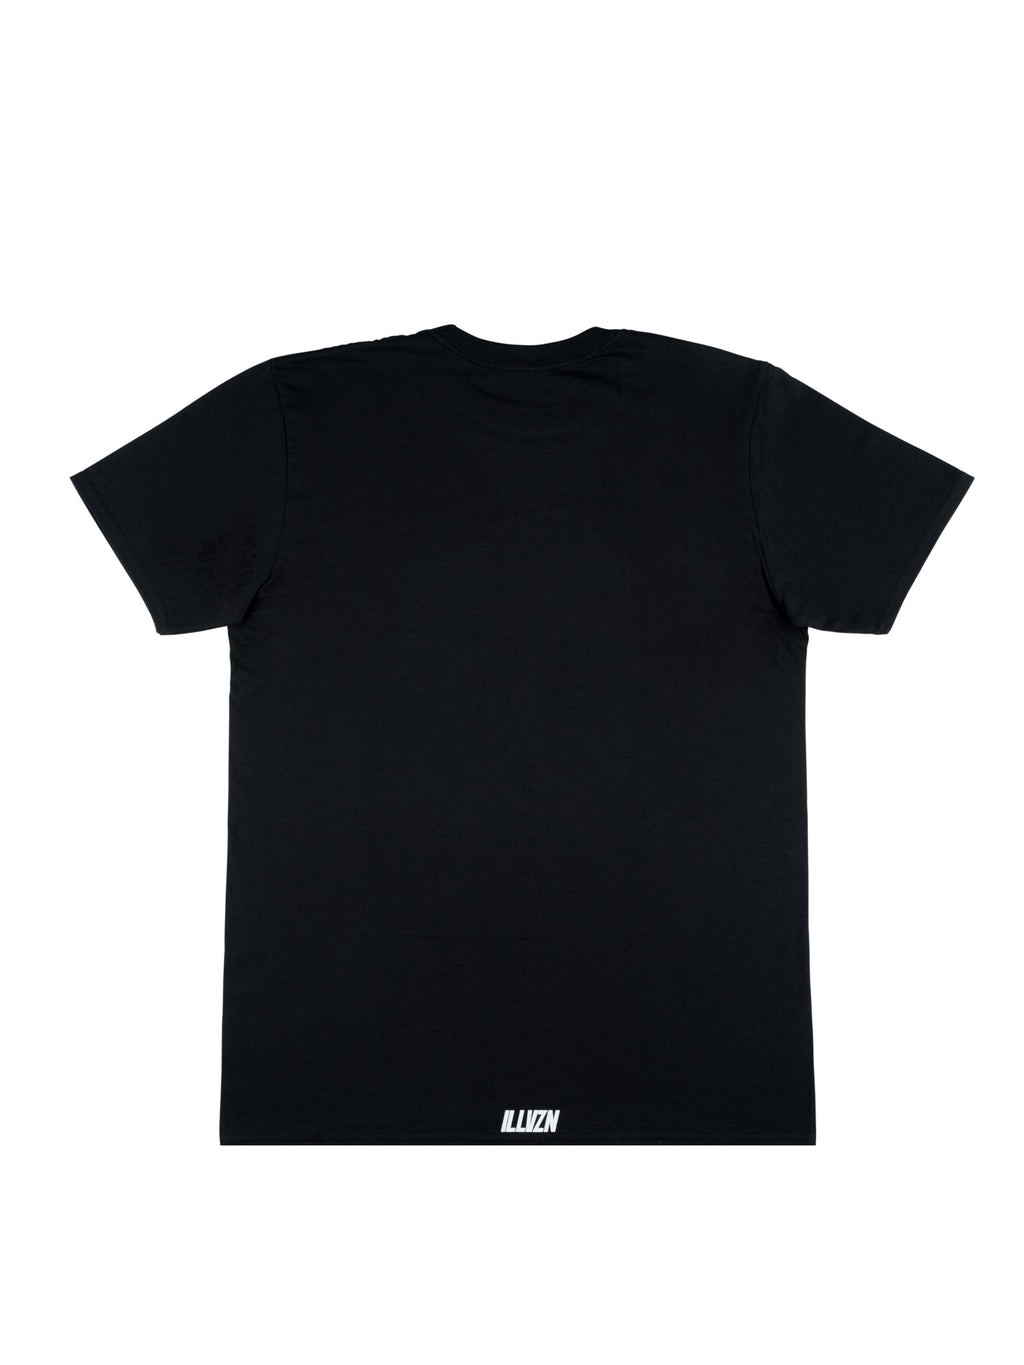 BLM TEE - PROFITS DONATED TO THE STEPHEN LAWRENCE CHARITABLE TRUST